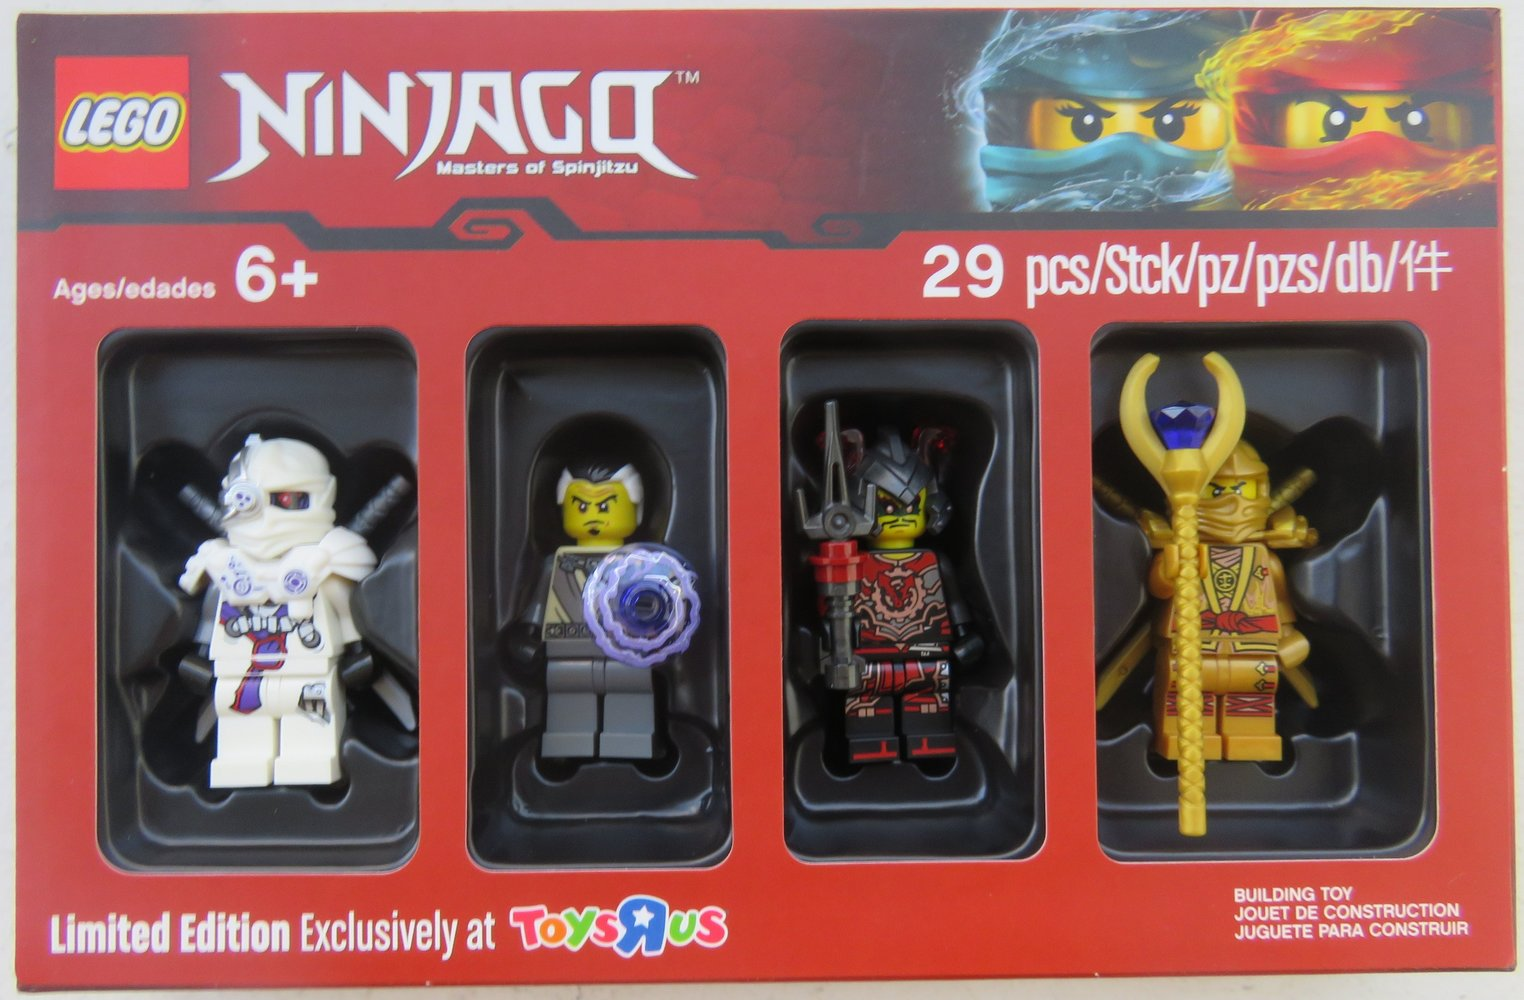 Collectible Minifigures - Ninjago